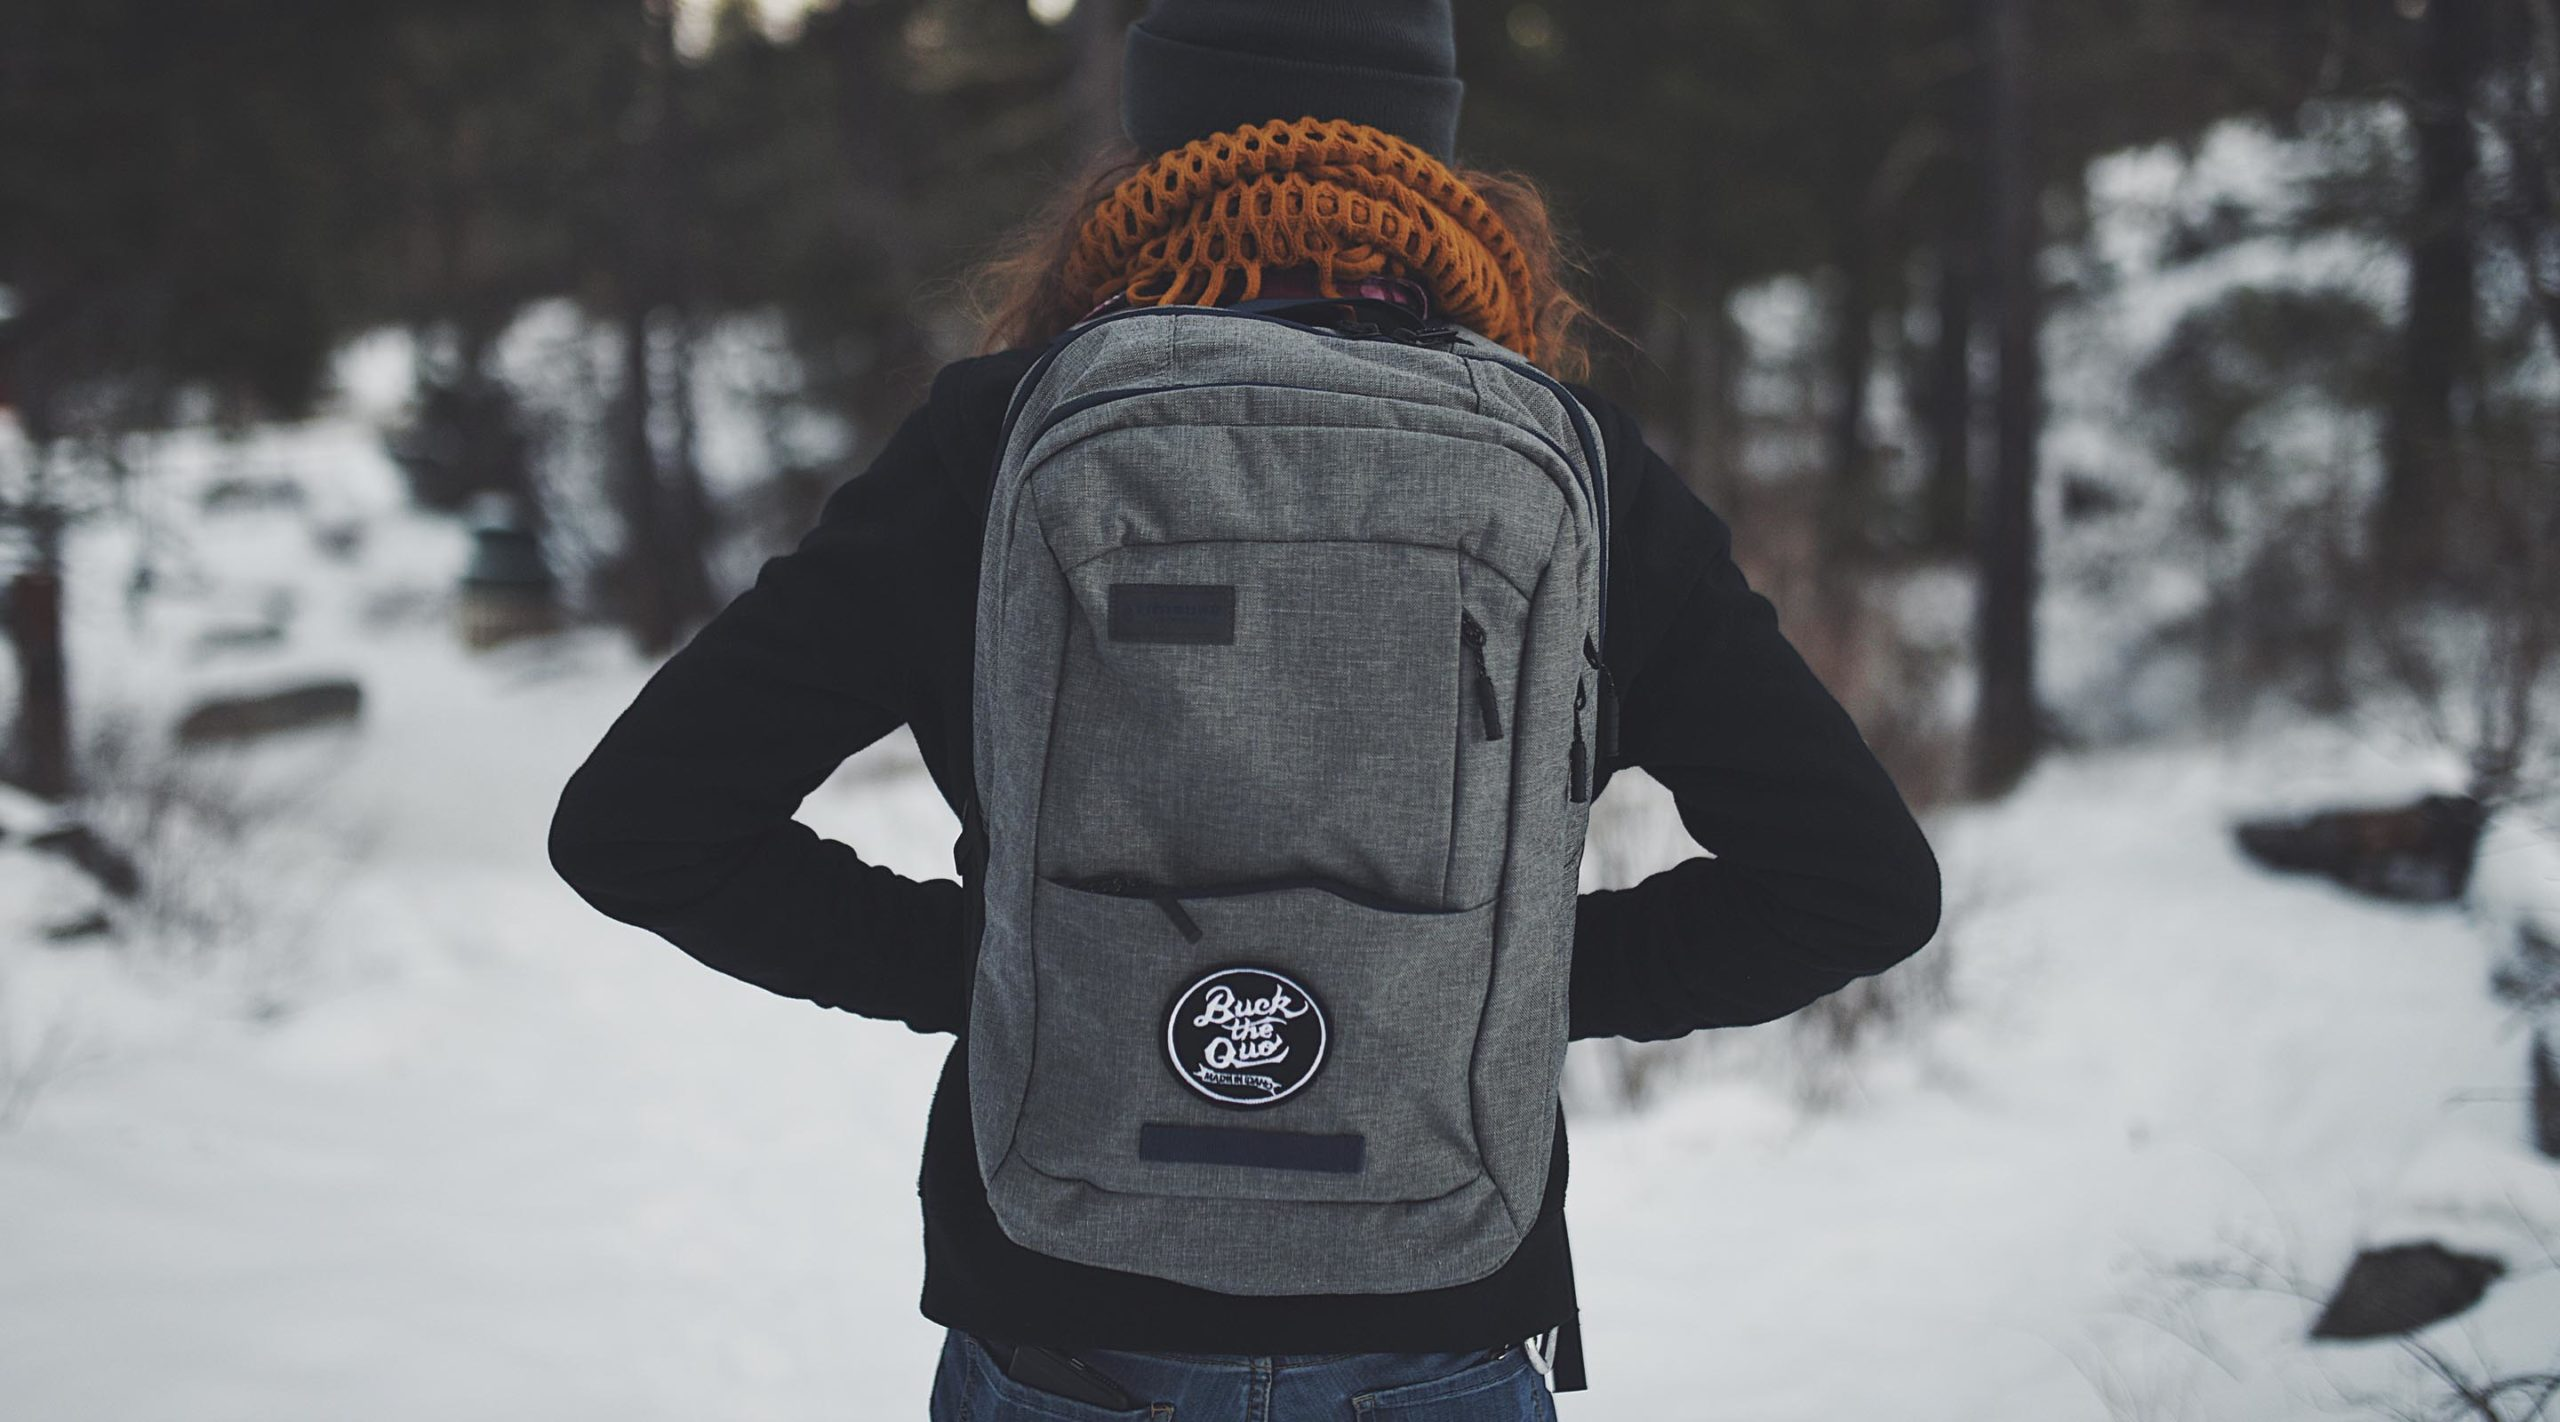 Girl wearing gray backpack with Buck the Quo patch